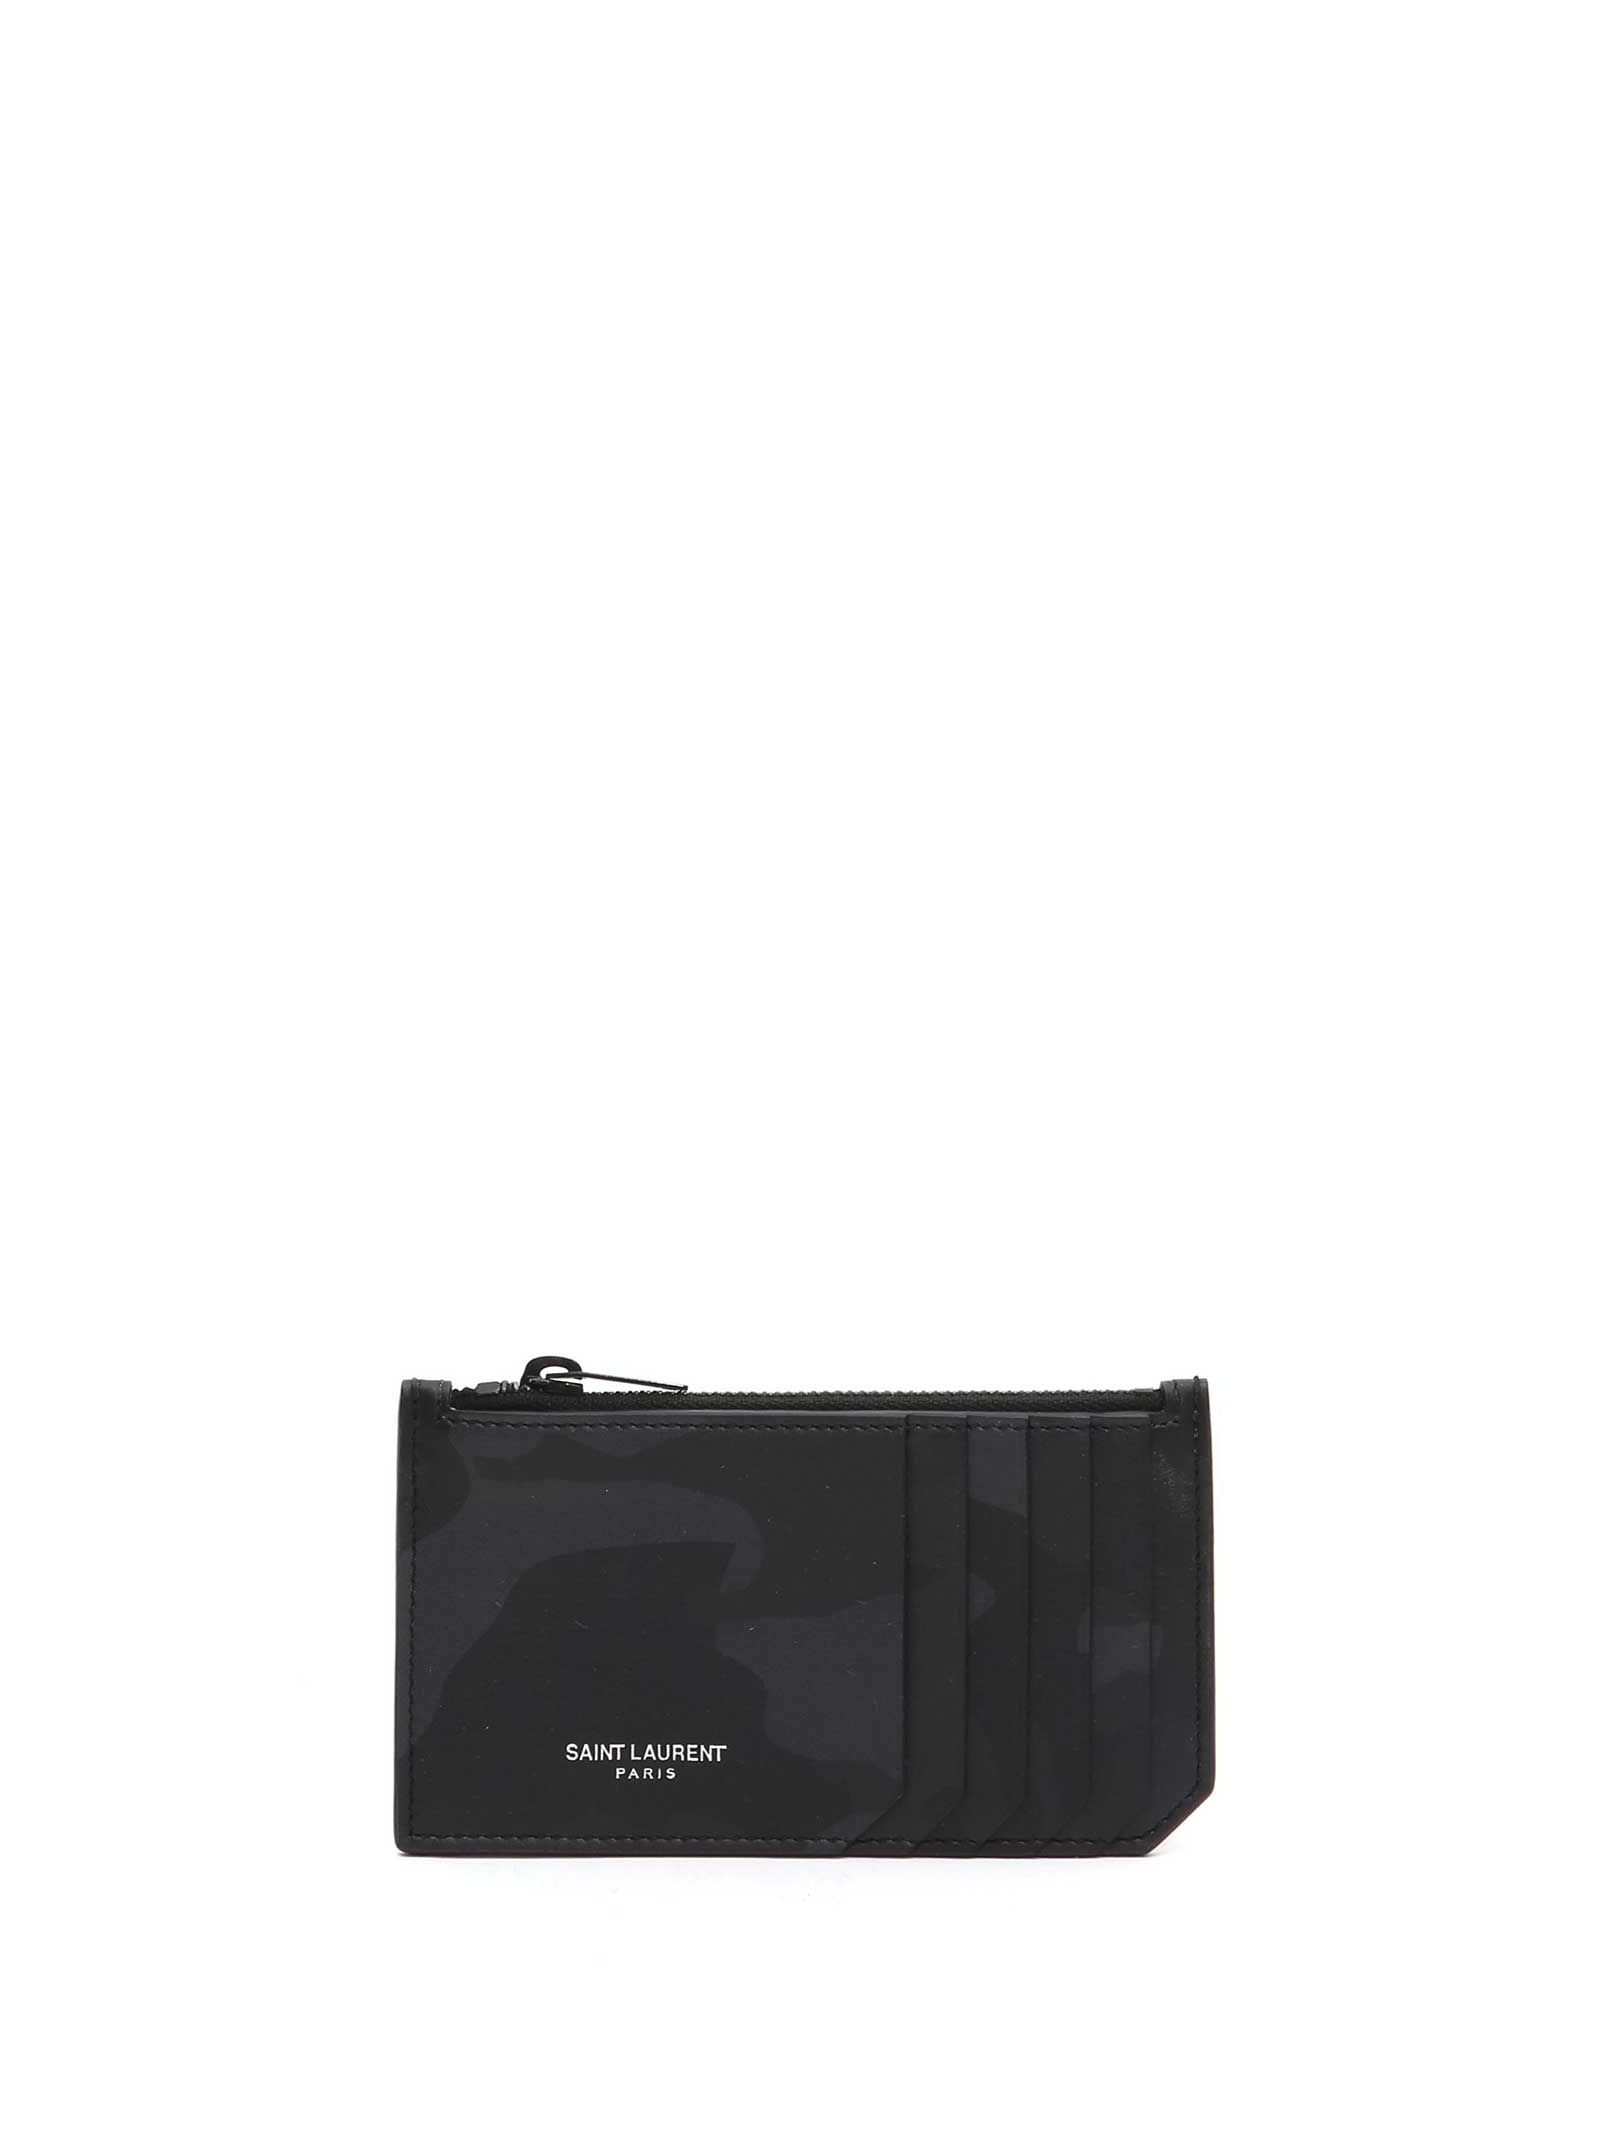 Saint Laurent 'paris' 5 Fragments Camouflage Zip Pouch